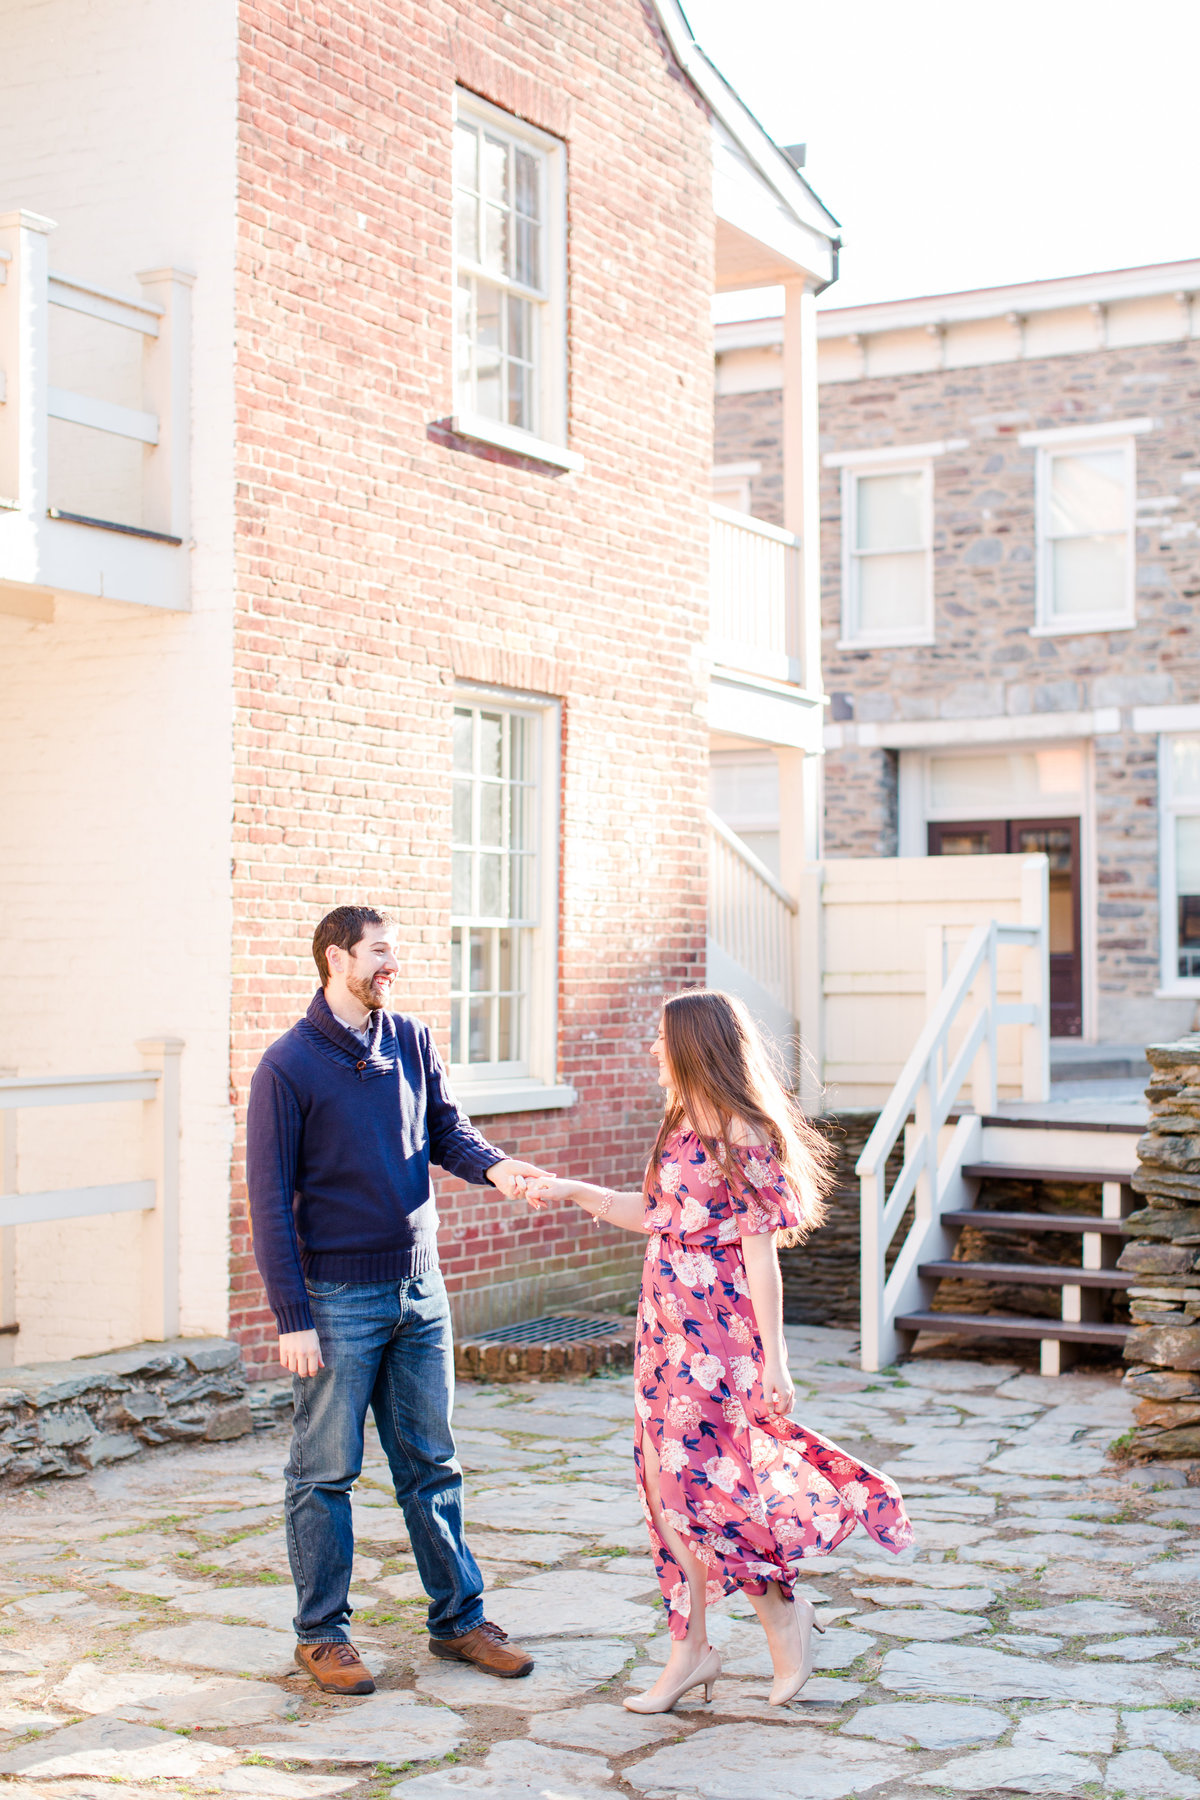 harpers-ferry-wv-river-jen-justin-engagement-bethanne-arthur-photography-photos-42